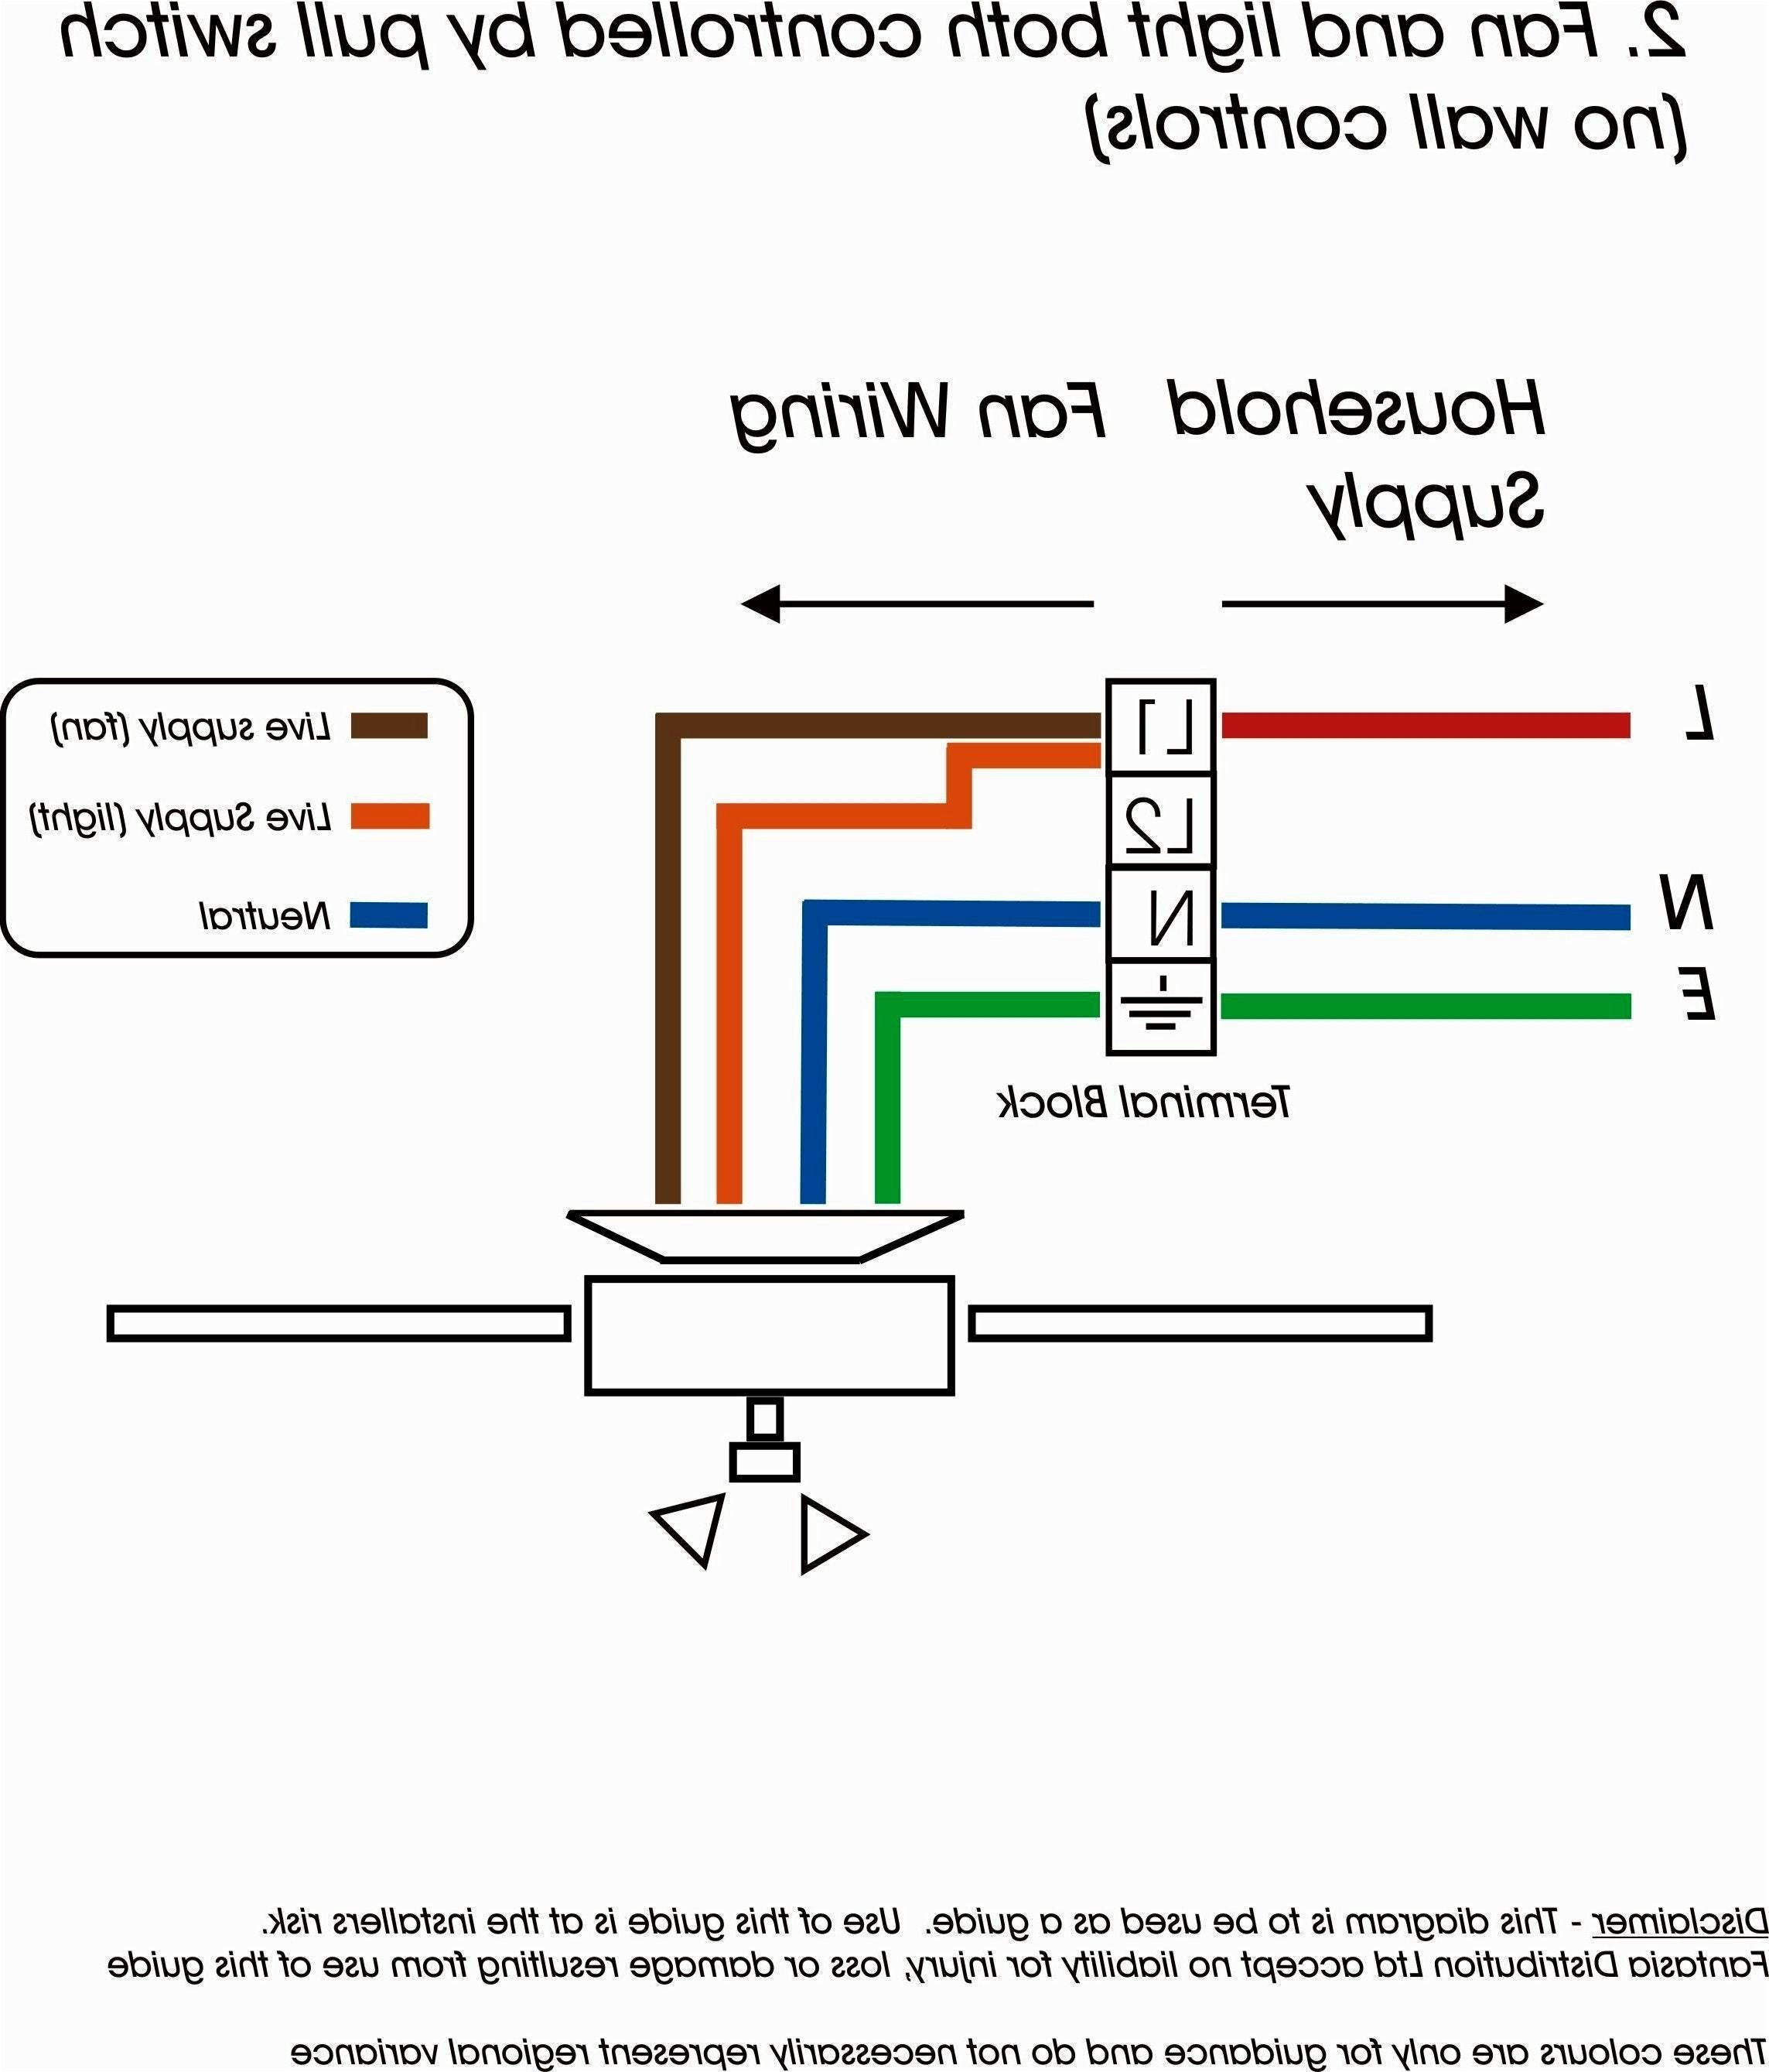 delco electric motor wiring diagram Collection-Wiring Diagram for Electric Fan Motors Fresh Wiring Diagram Ac Motor New Wiring Diagram Motor Fan 17-j